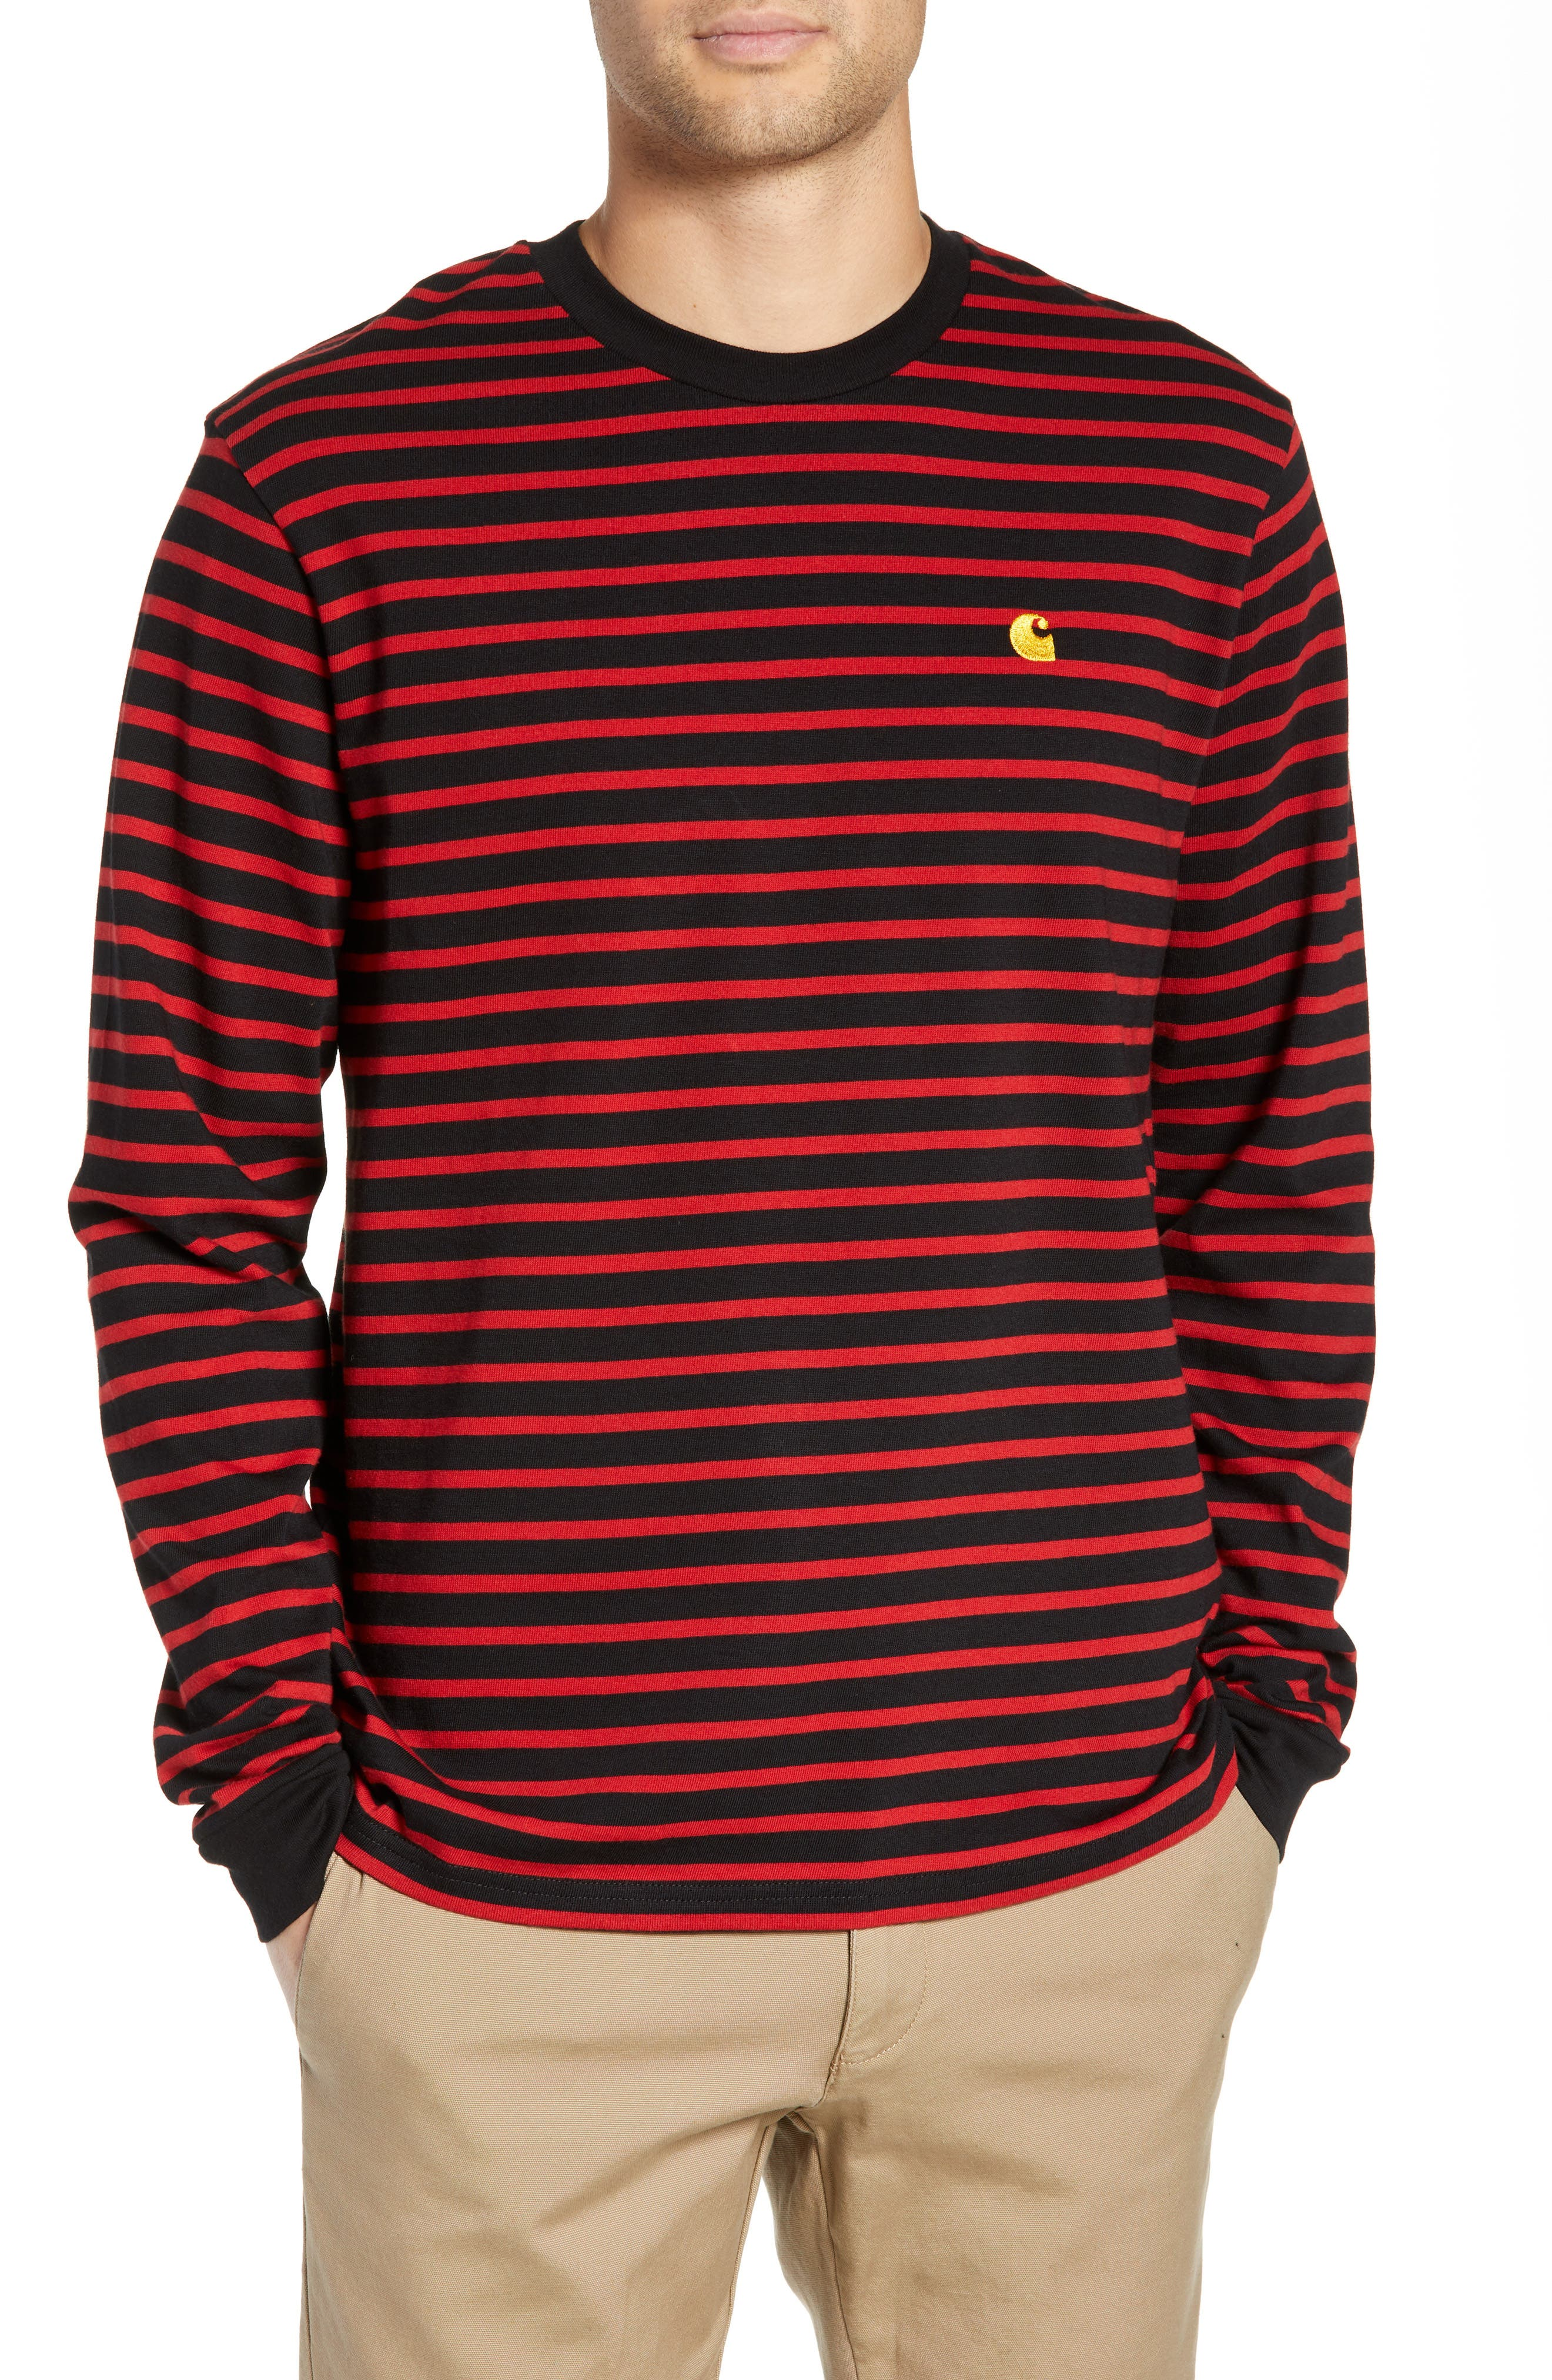 Long Sleeve Robie T-Shirt,                             Main thumbnail 1, color,                             BLACK/BLAST RED/QUINCE